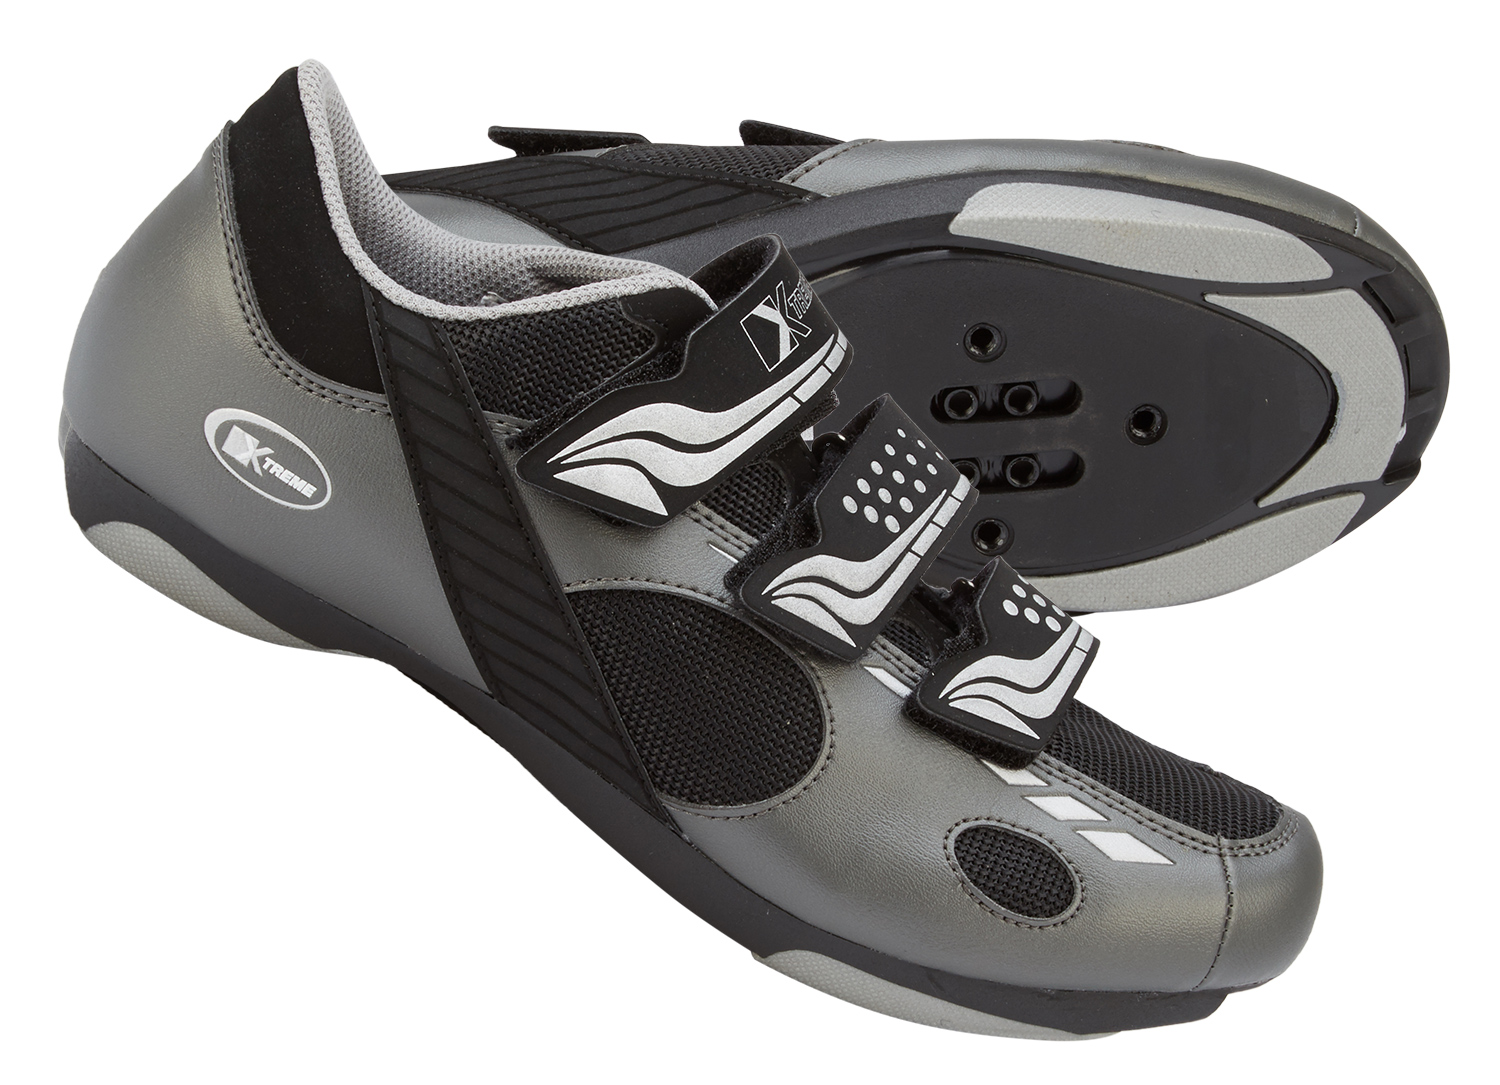 Xtreme - Cykel- og Spinningsko - X-Speed - Grå | Shoes and overlays